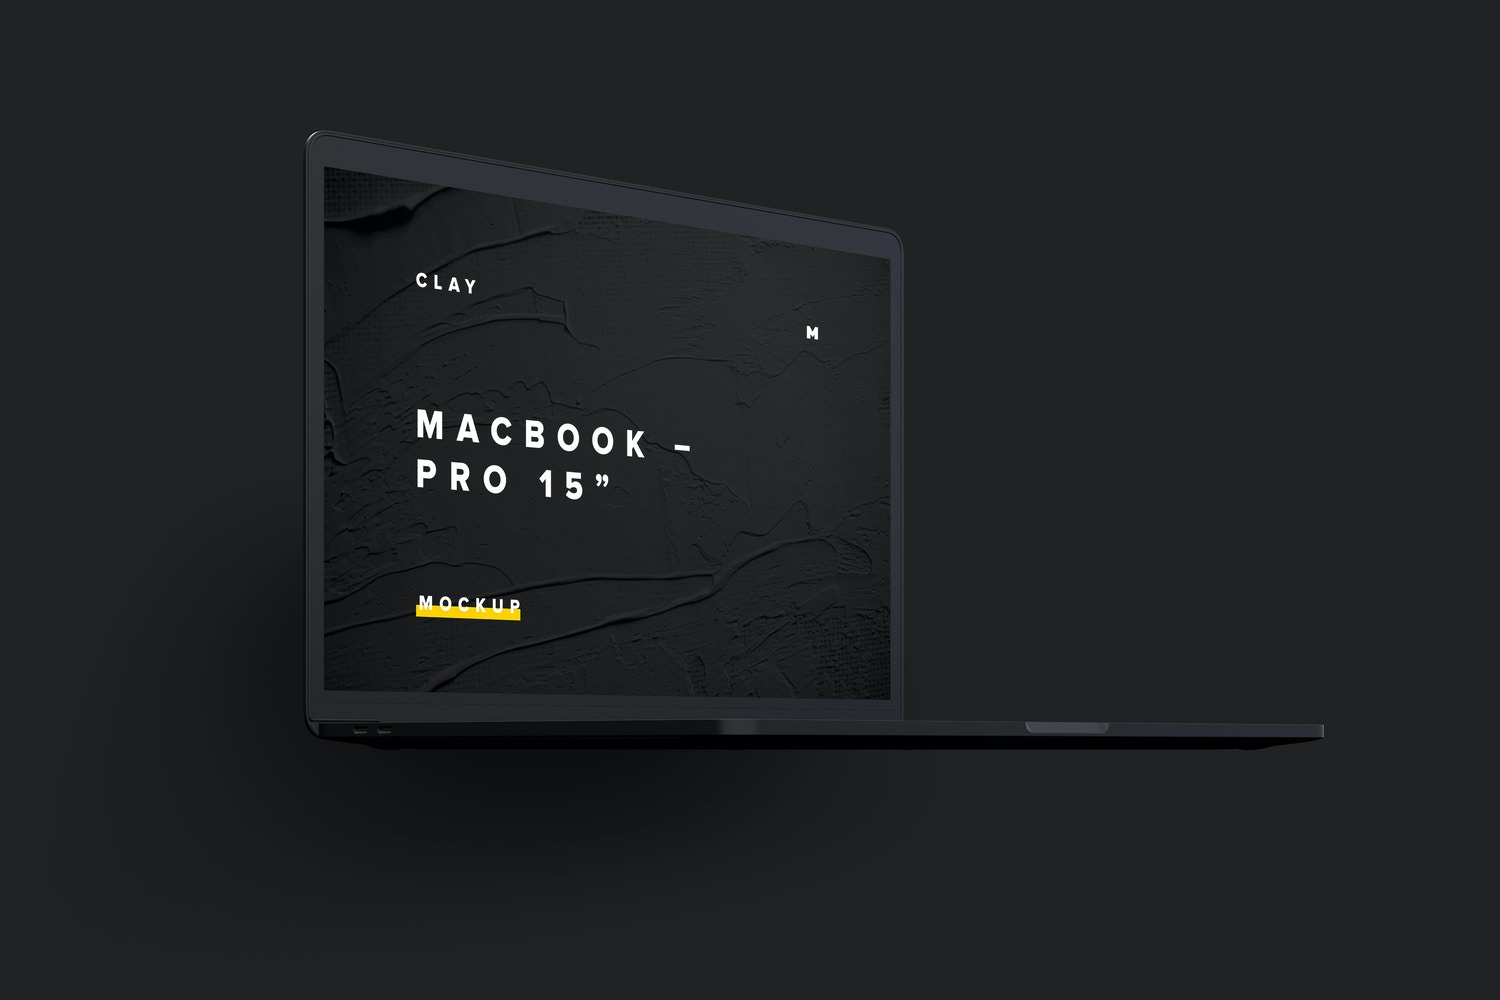 "Clay MacBook Pro 15"" with Touch Bar, Front Left View Mockup 02 (4) by Original Mockups on Original Mockups"